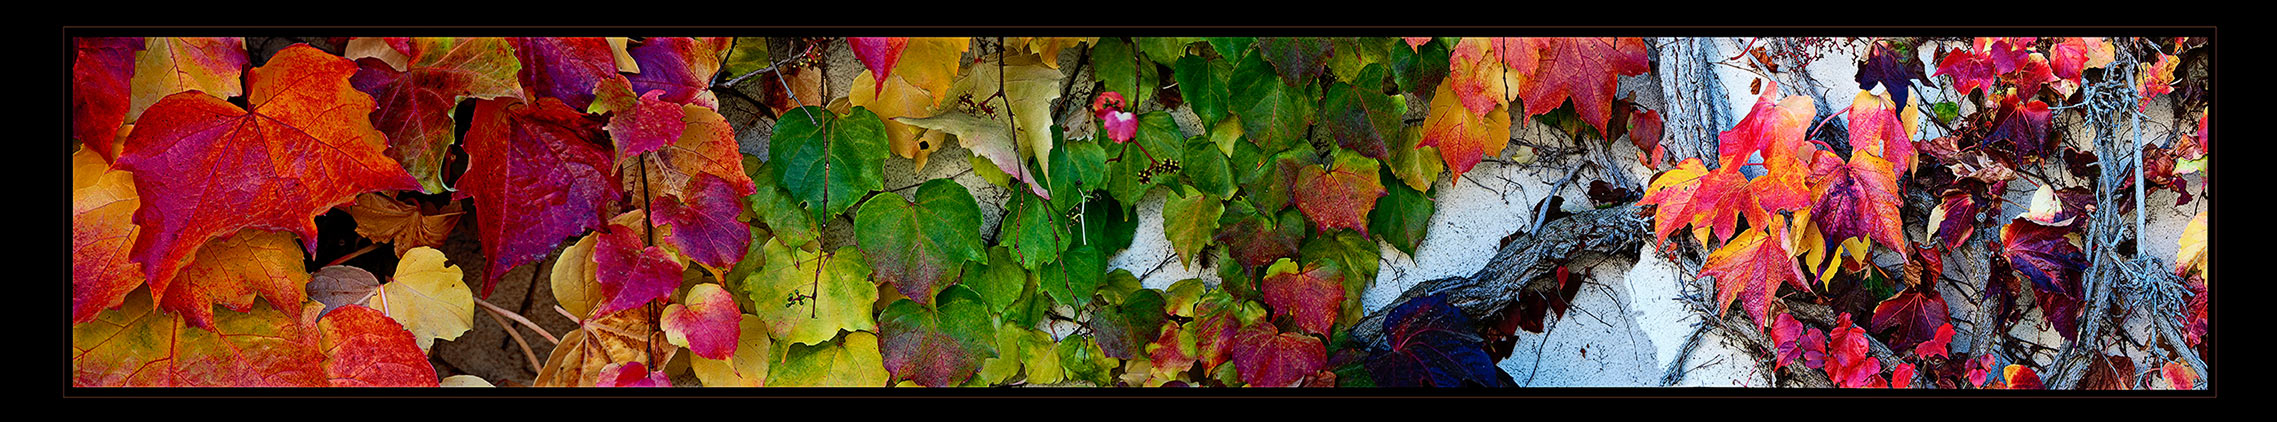 Autumn colors of grape leaves